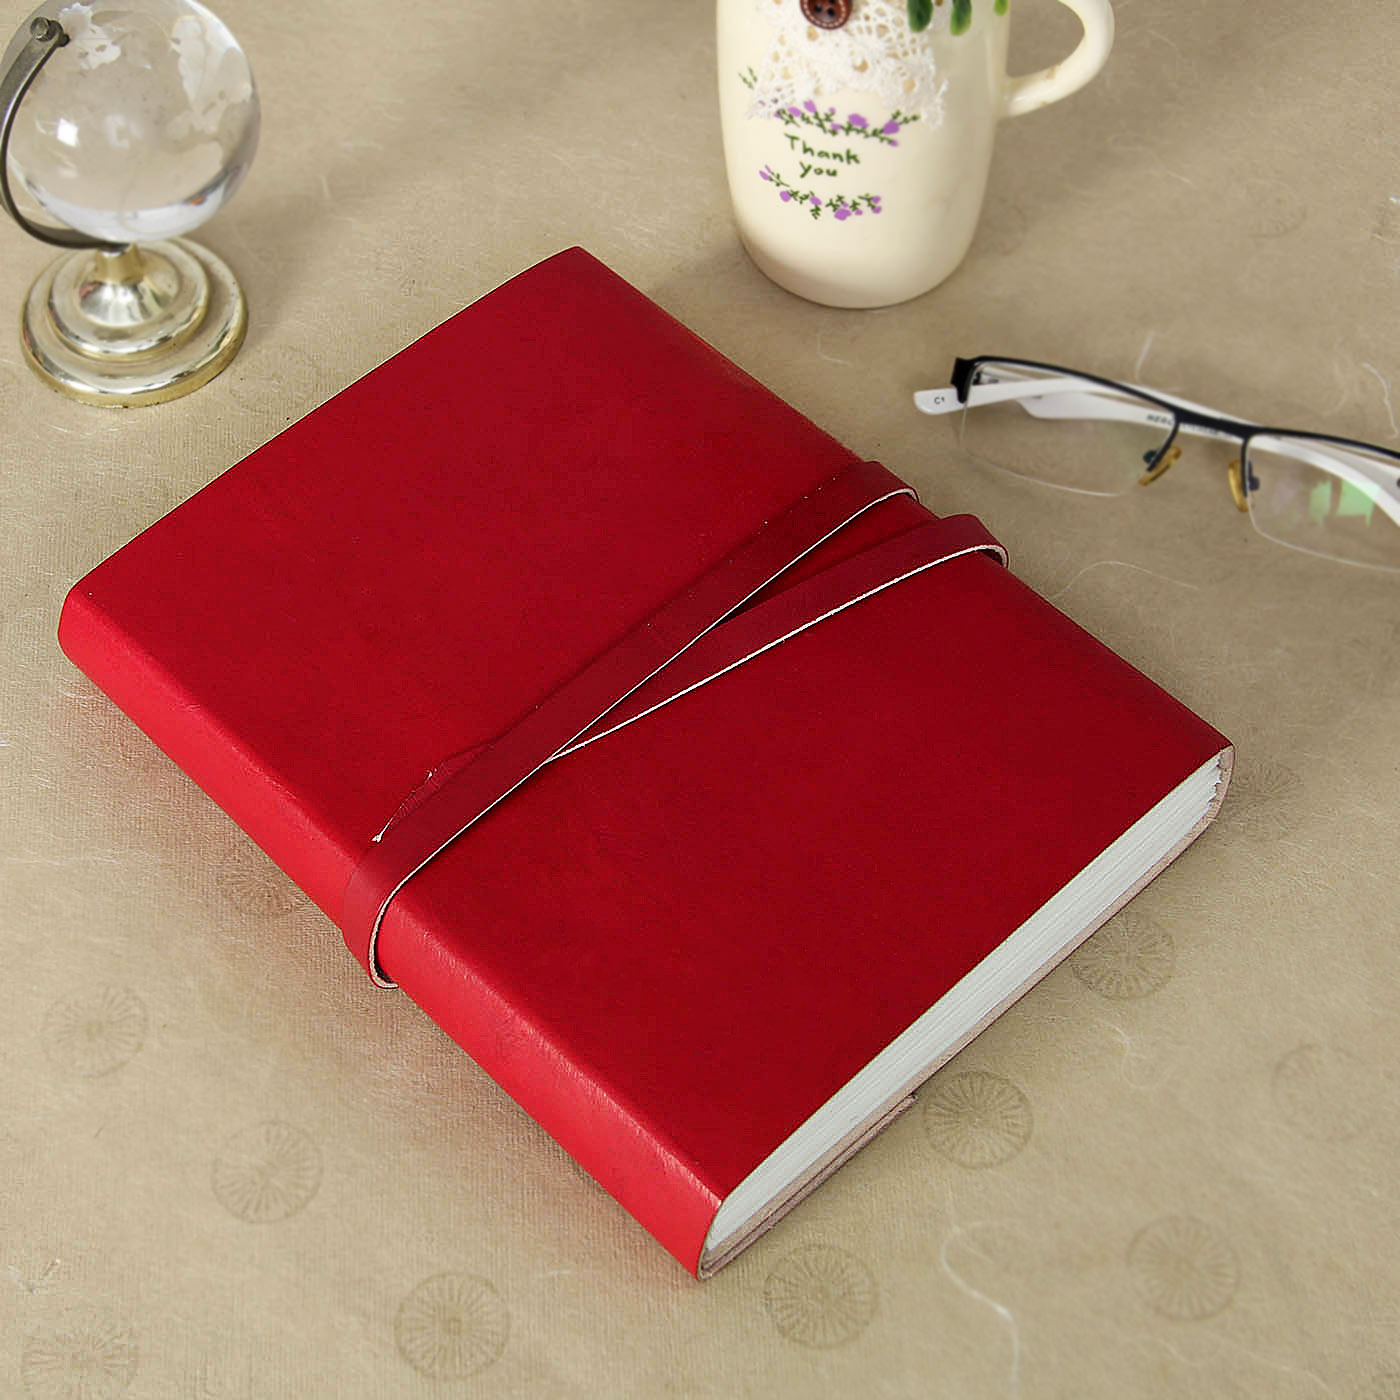 Red Leather Handmade Notebook with Strap Closure